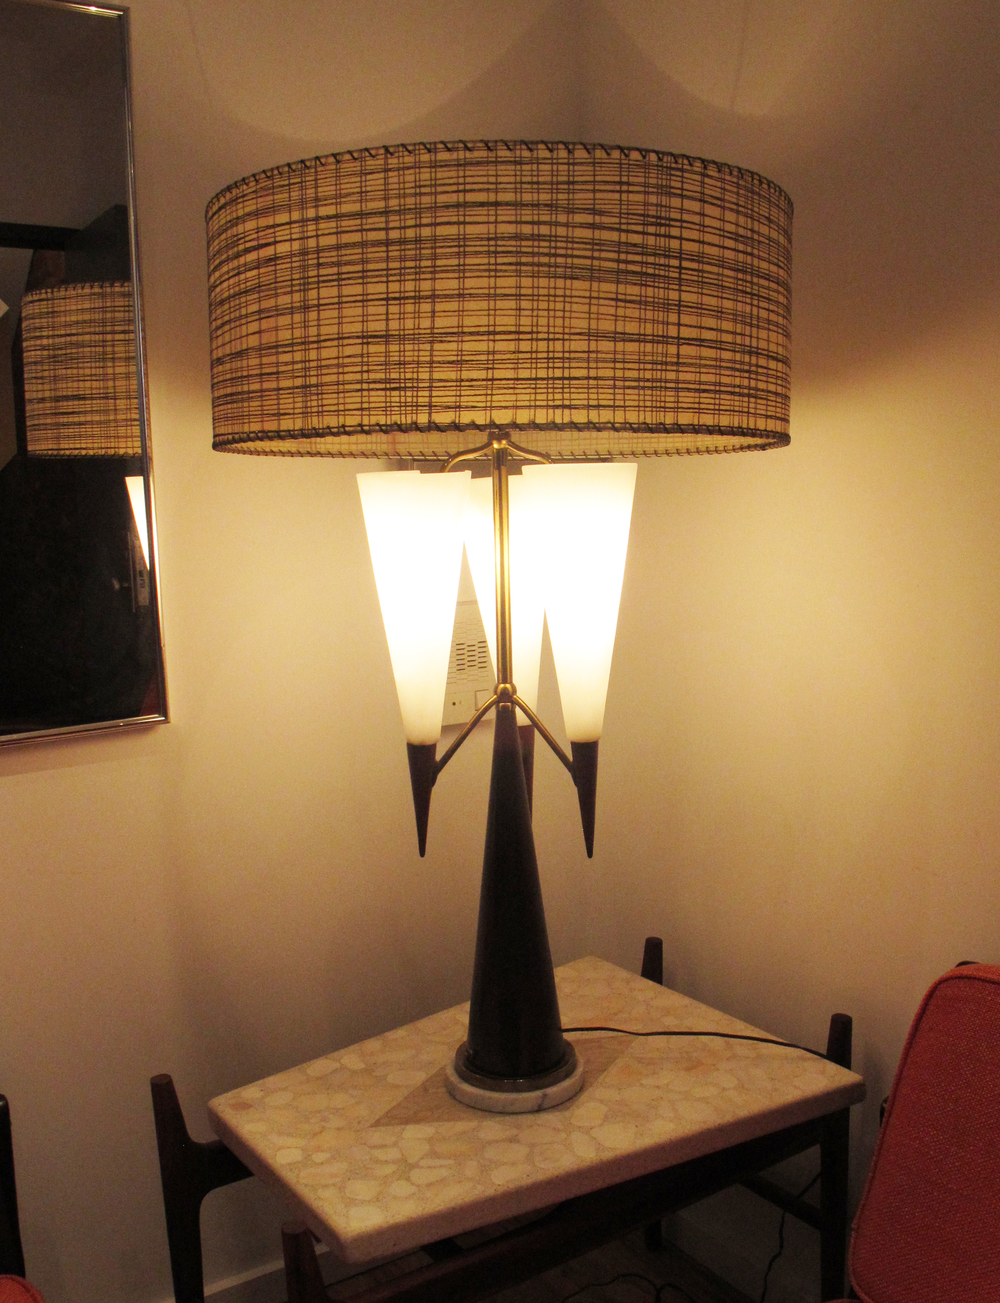 GRAND MID CENTURY PONTI STYLE TABLE LAMP